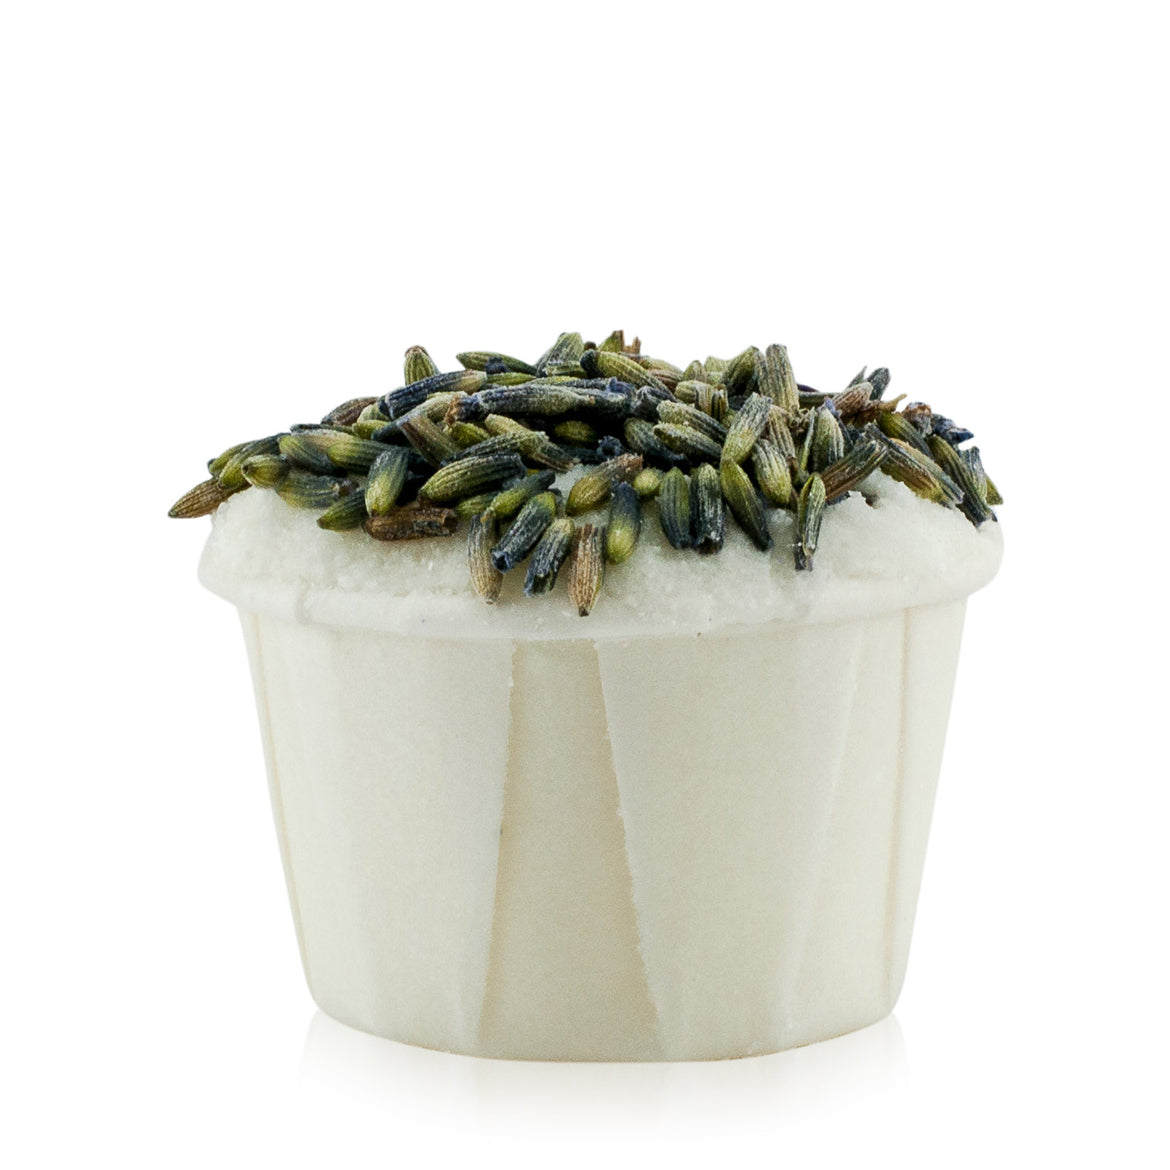 Natural vegan skincare lavender buttercup bath melt decorated with lavender buds with no packaging, handmade by WiDEYE in Rye.